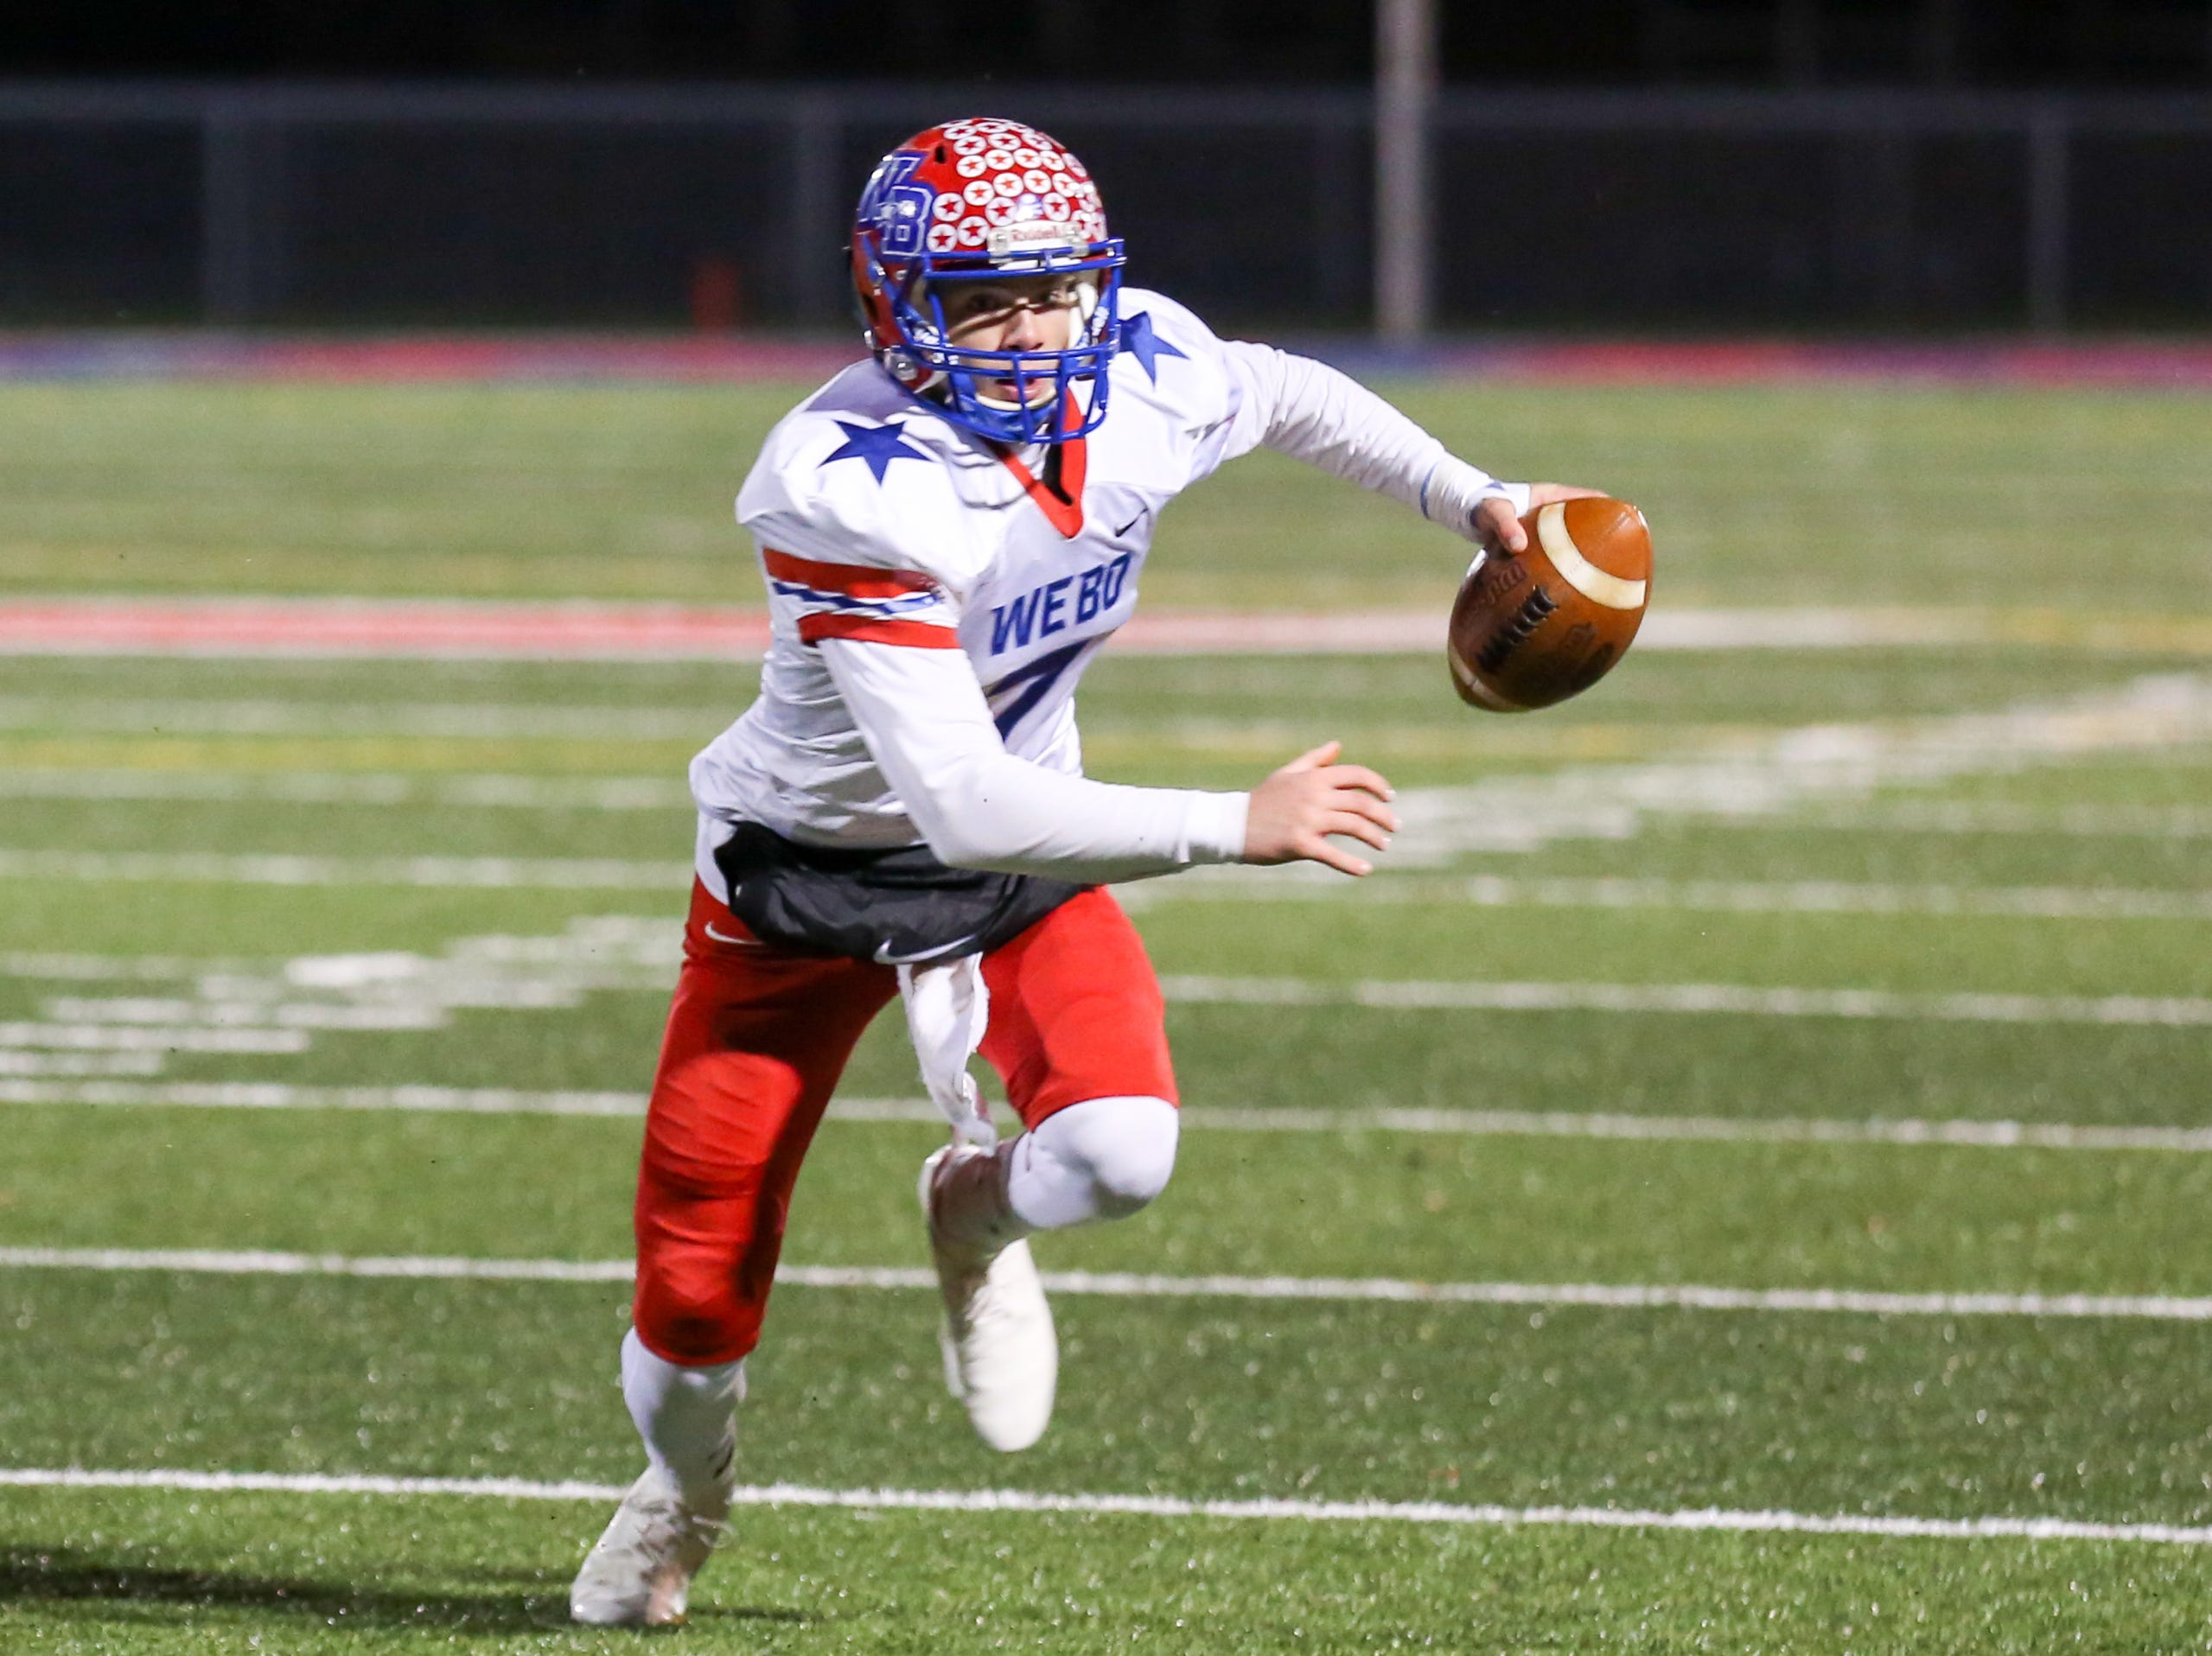 Western Boone's Spencer Wright (7) rolls out of the pocket and makes a run during the first half of Indianapolis Scecina vs Western Boone High School varsity football in the Class 2A Regional Championship held at Roncalli High School, Friday, November 9, 2018.